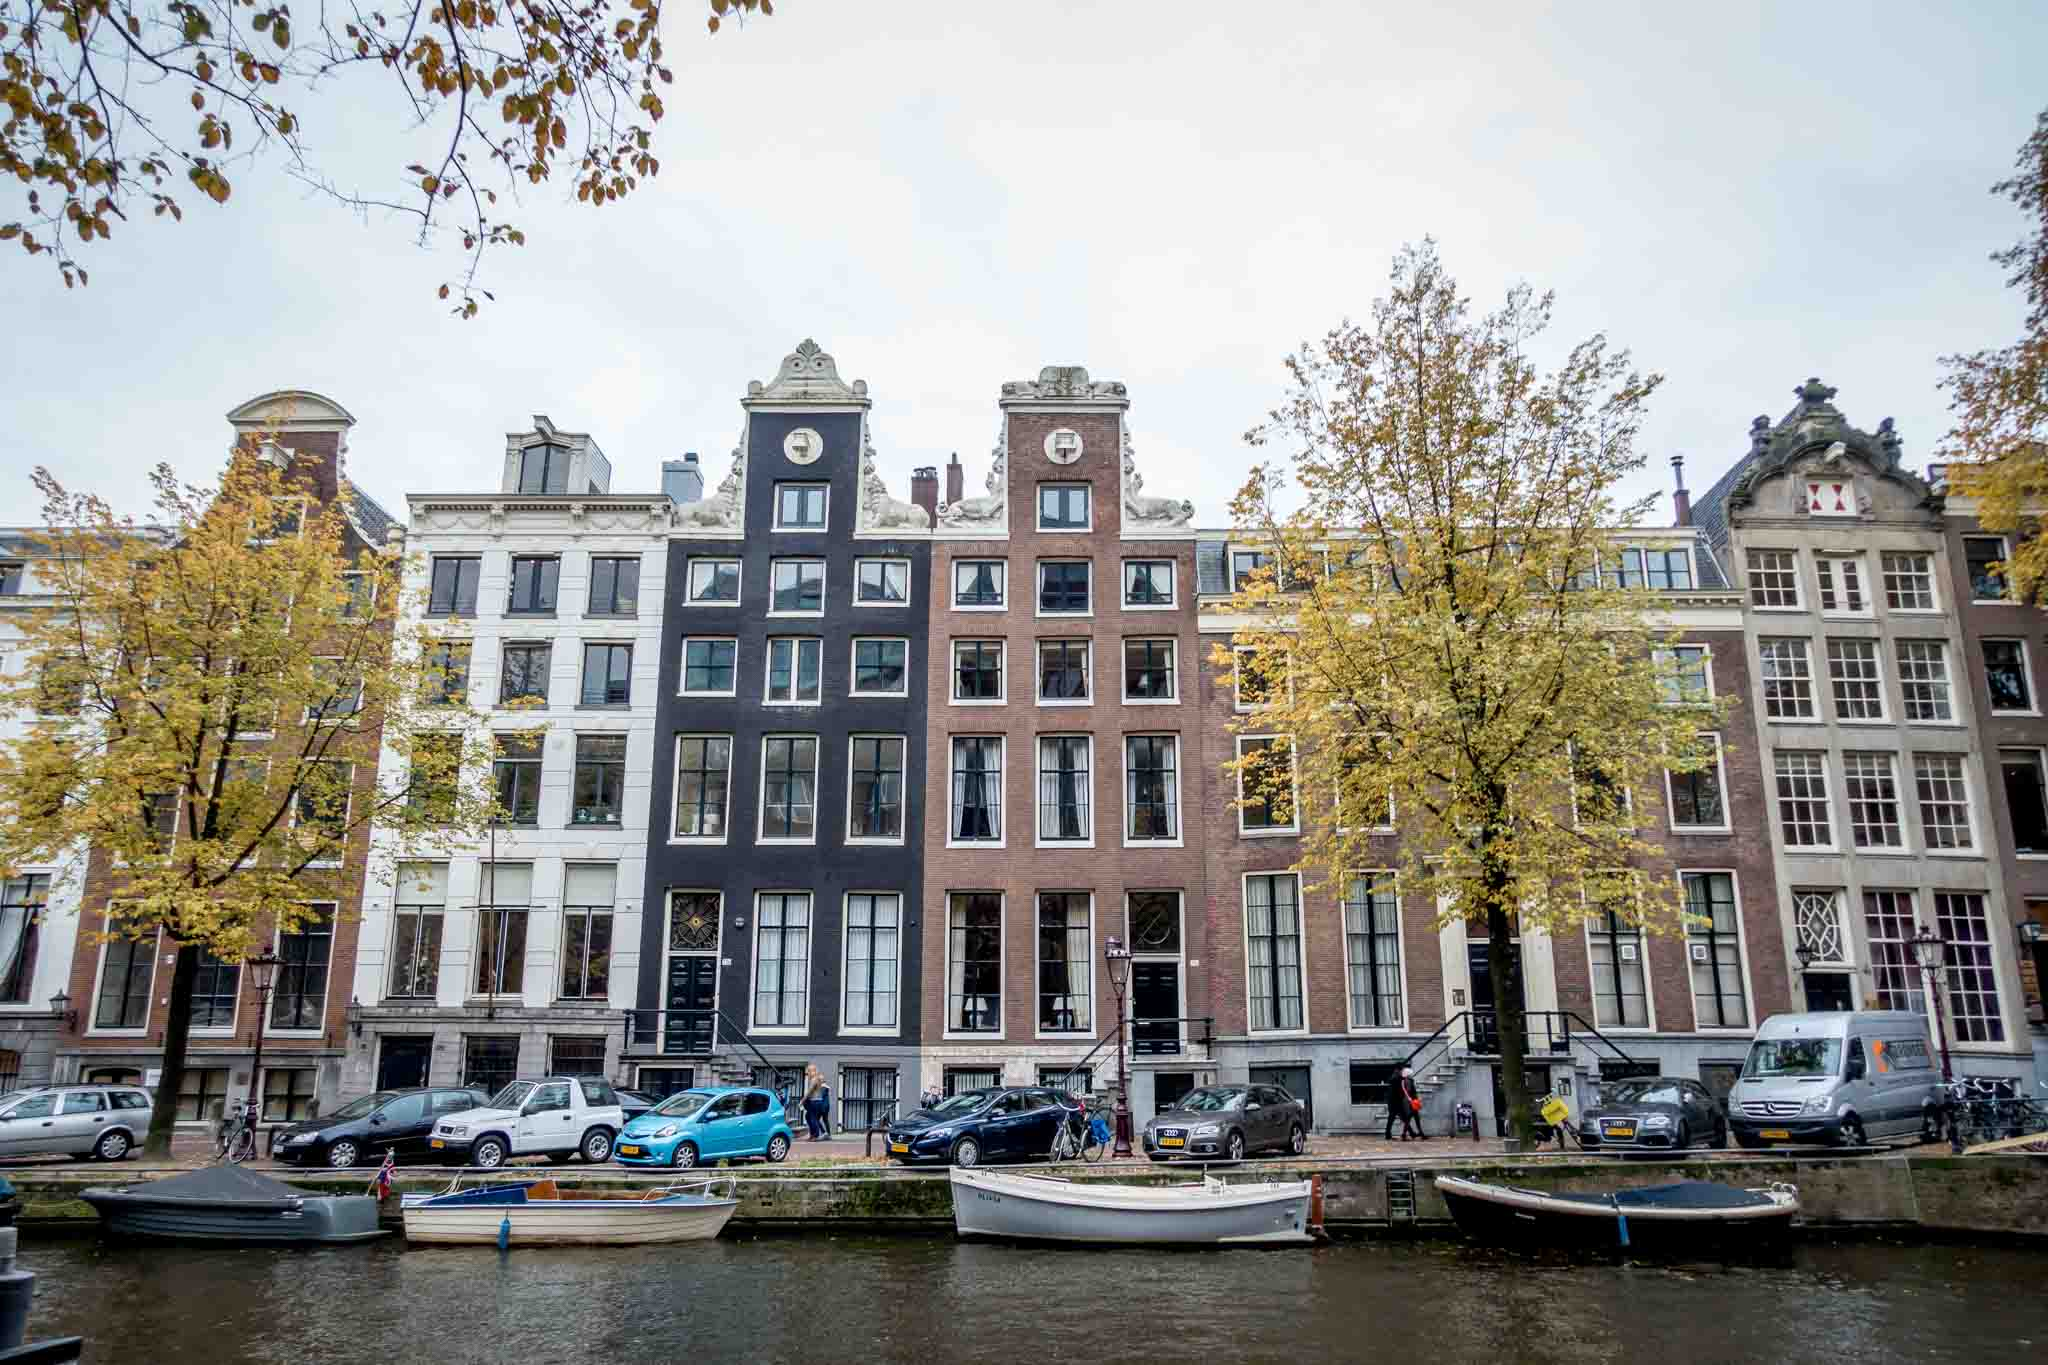 Some of the beautiful, historic canal houses. Just taking in the sights is one of the best free things to do in Amsterdam in a day